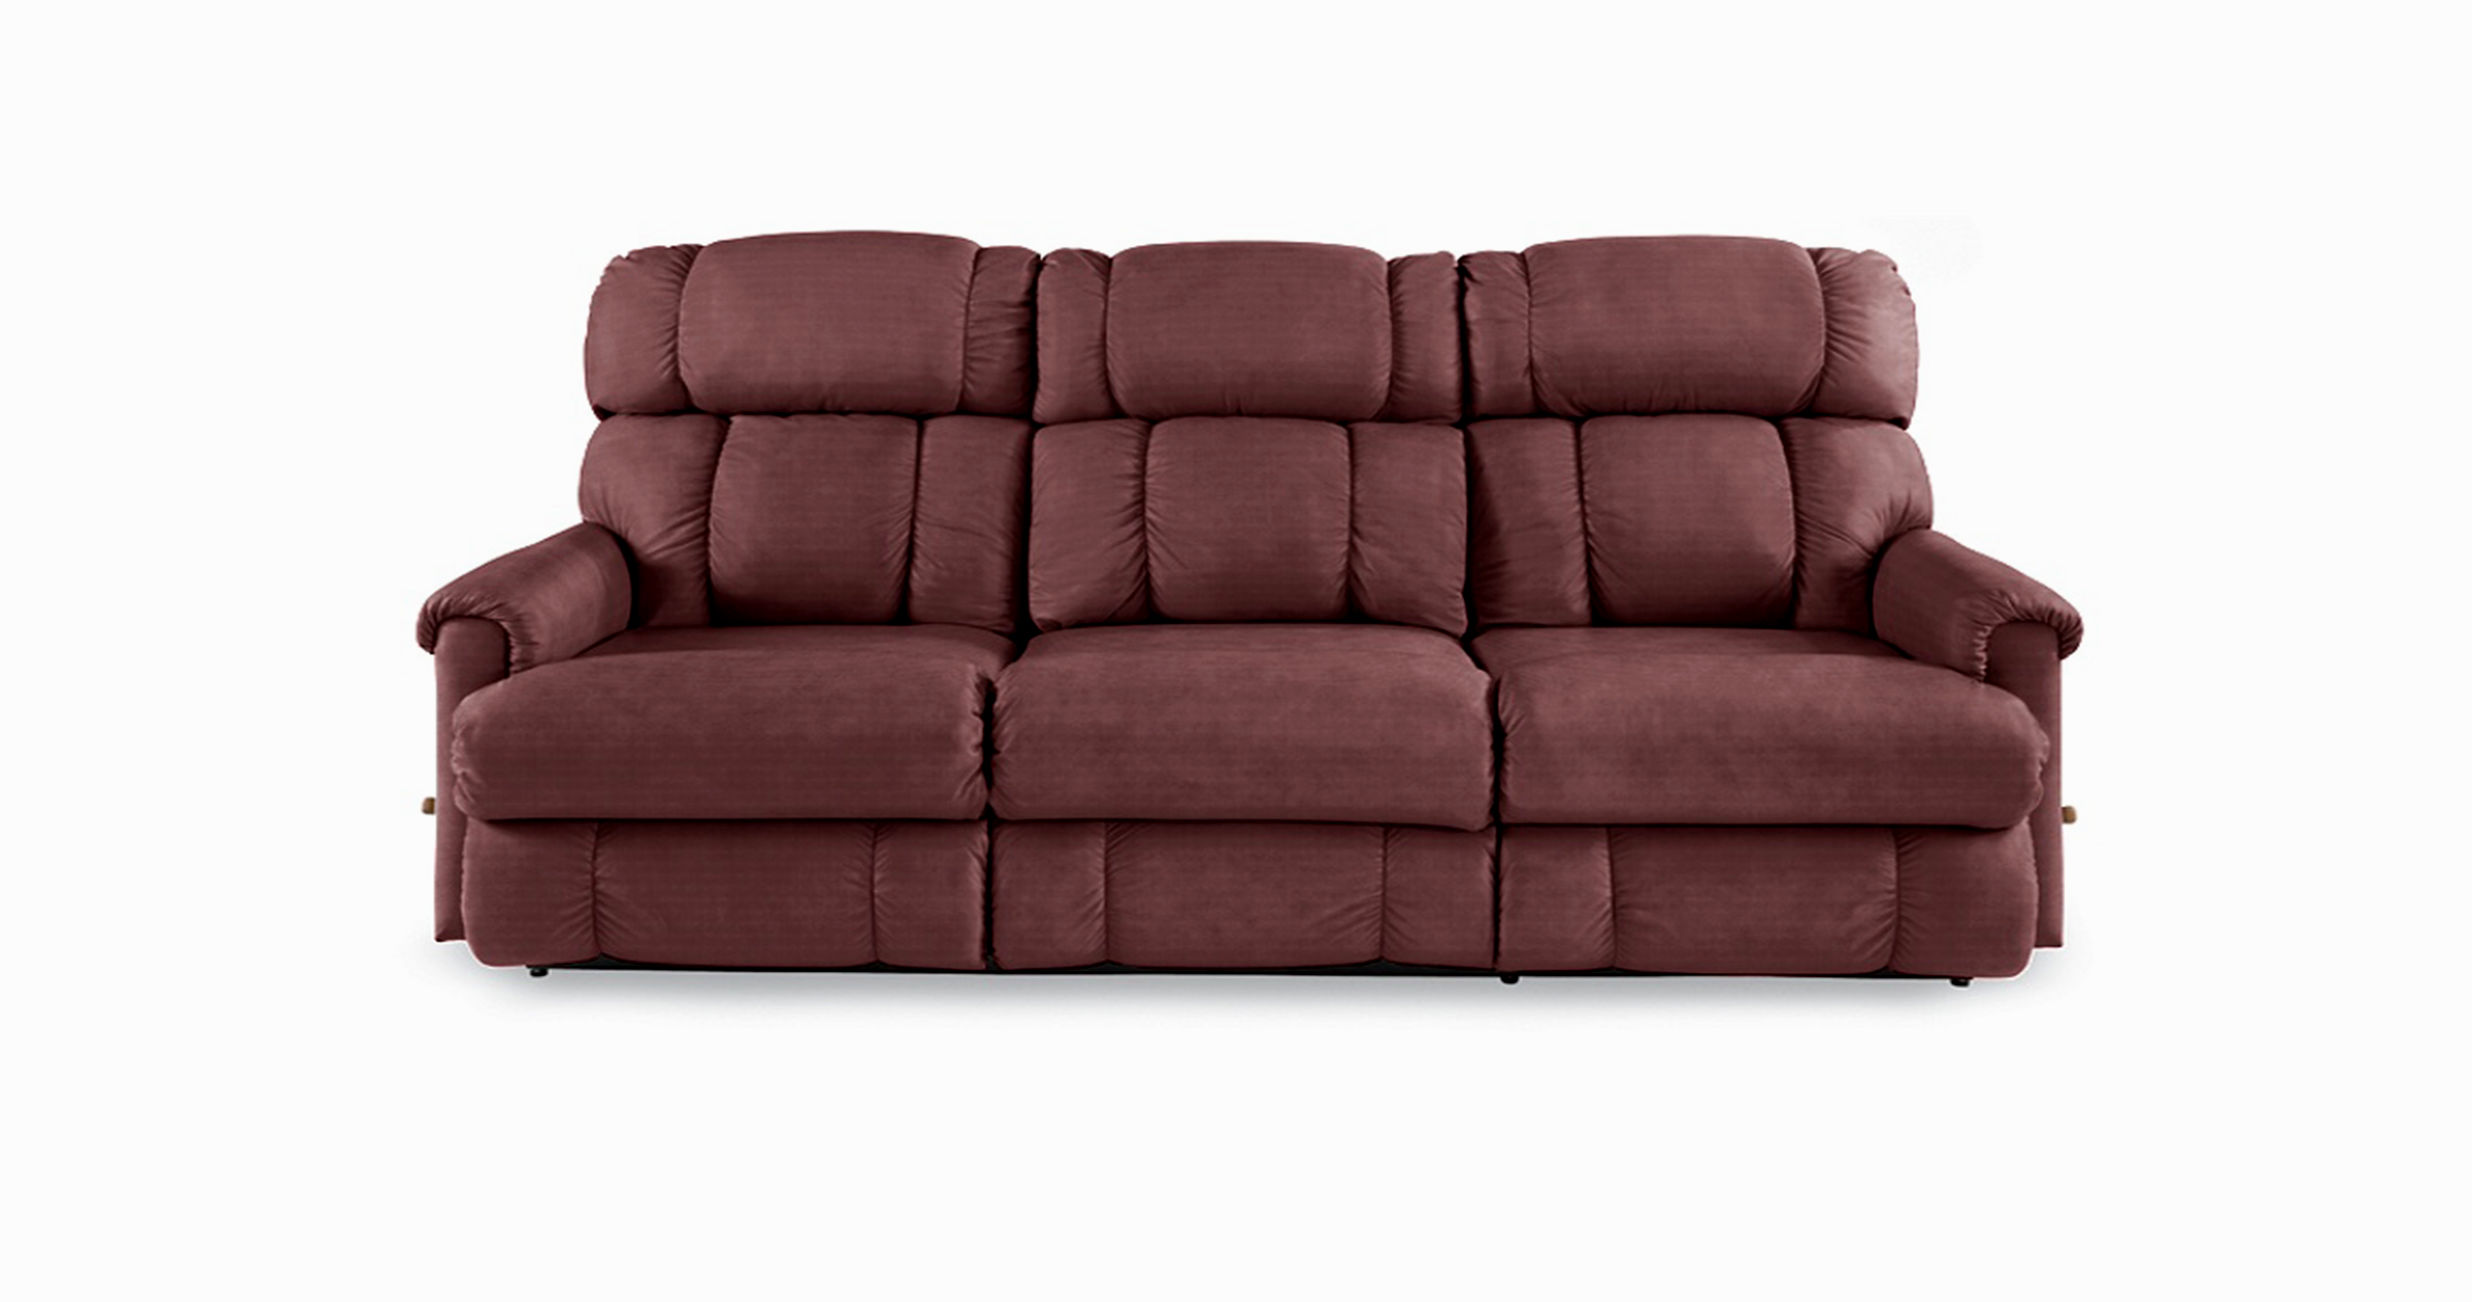 best lazy boy sectional sofas gallery-Incredible Lazy Boy Sectional sofas Décor